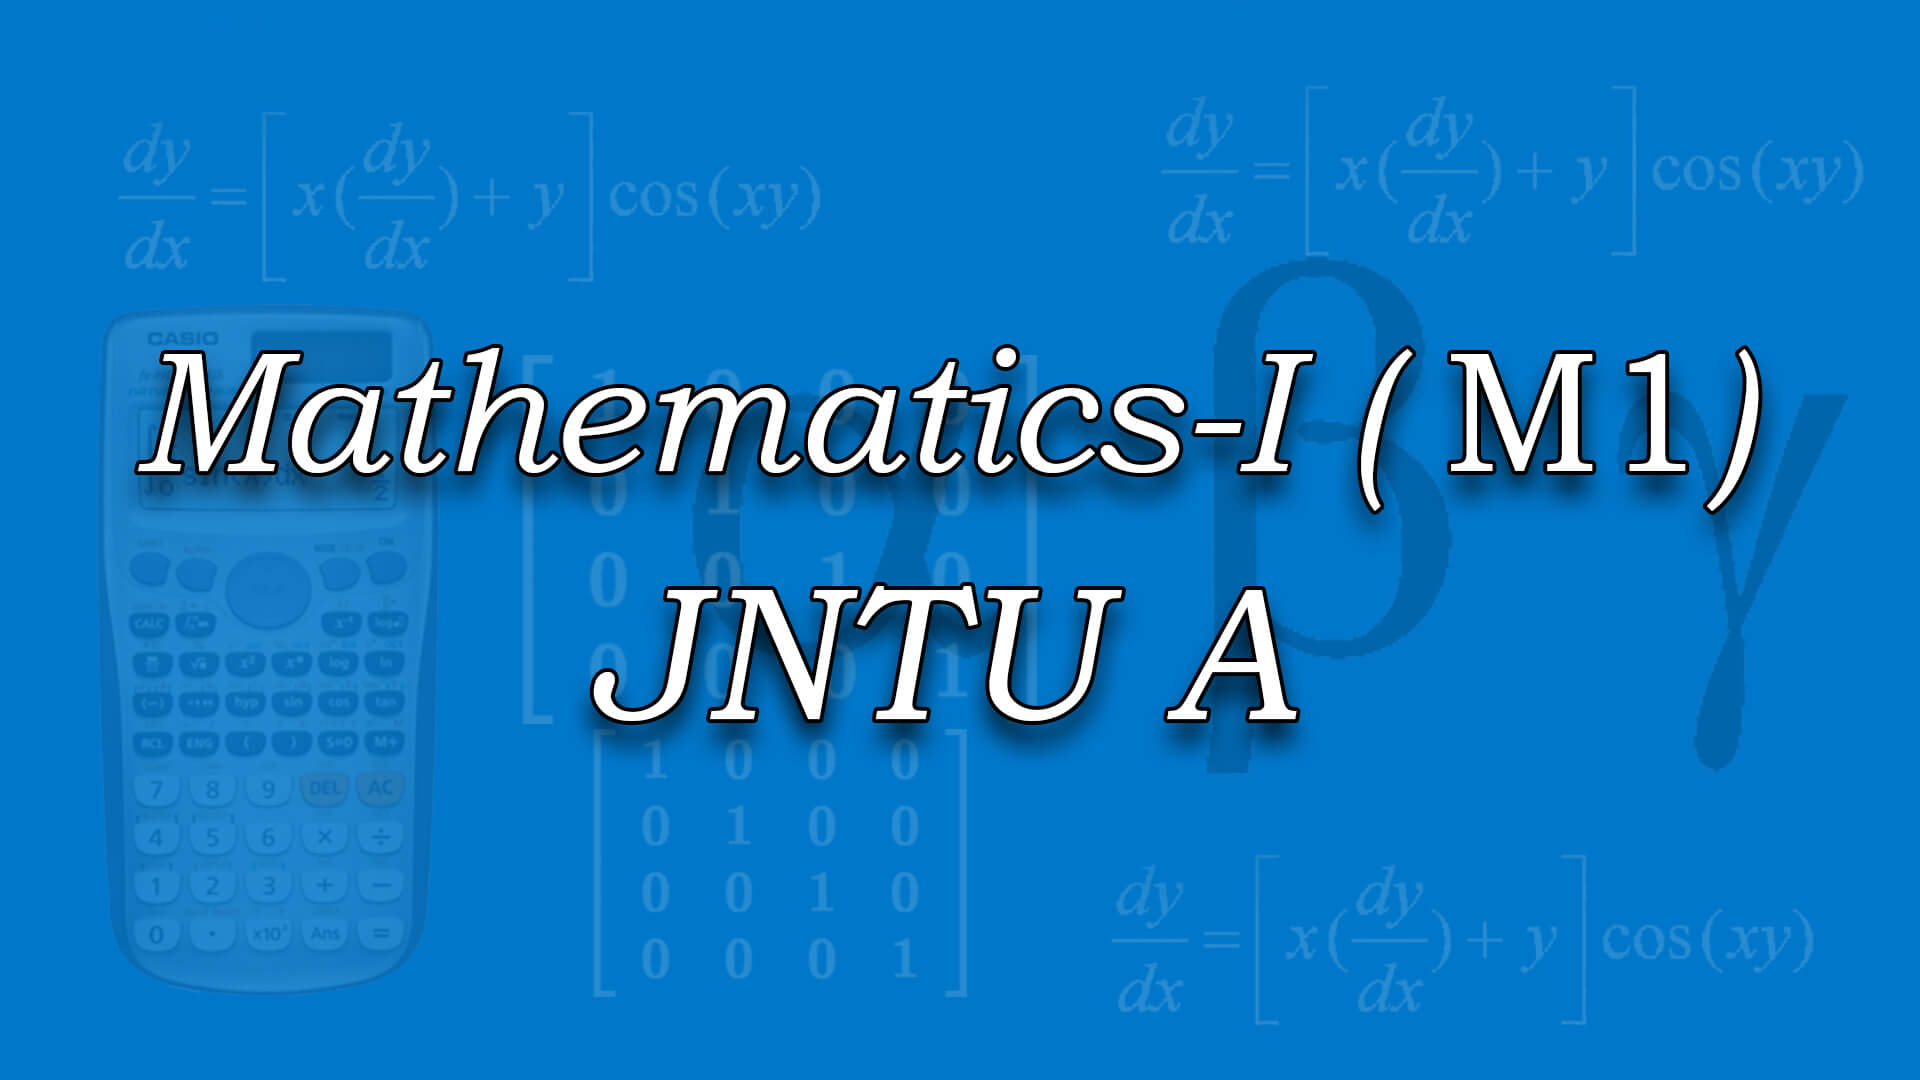 Mathematics-I for JNTUA online videos